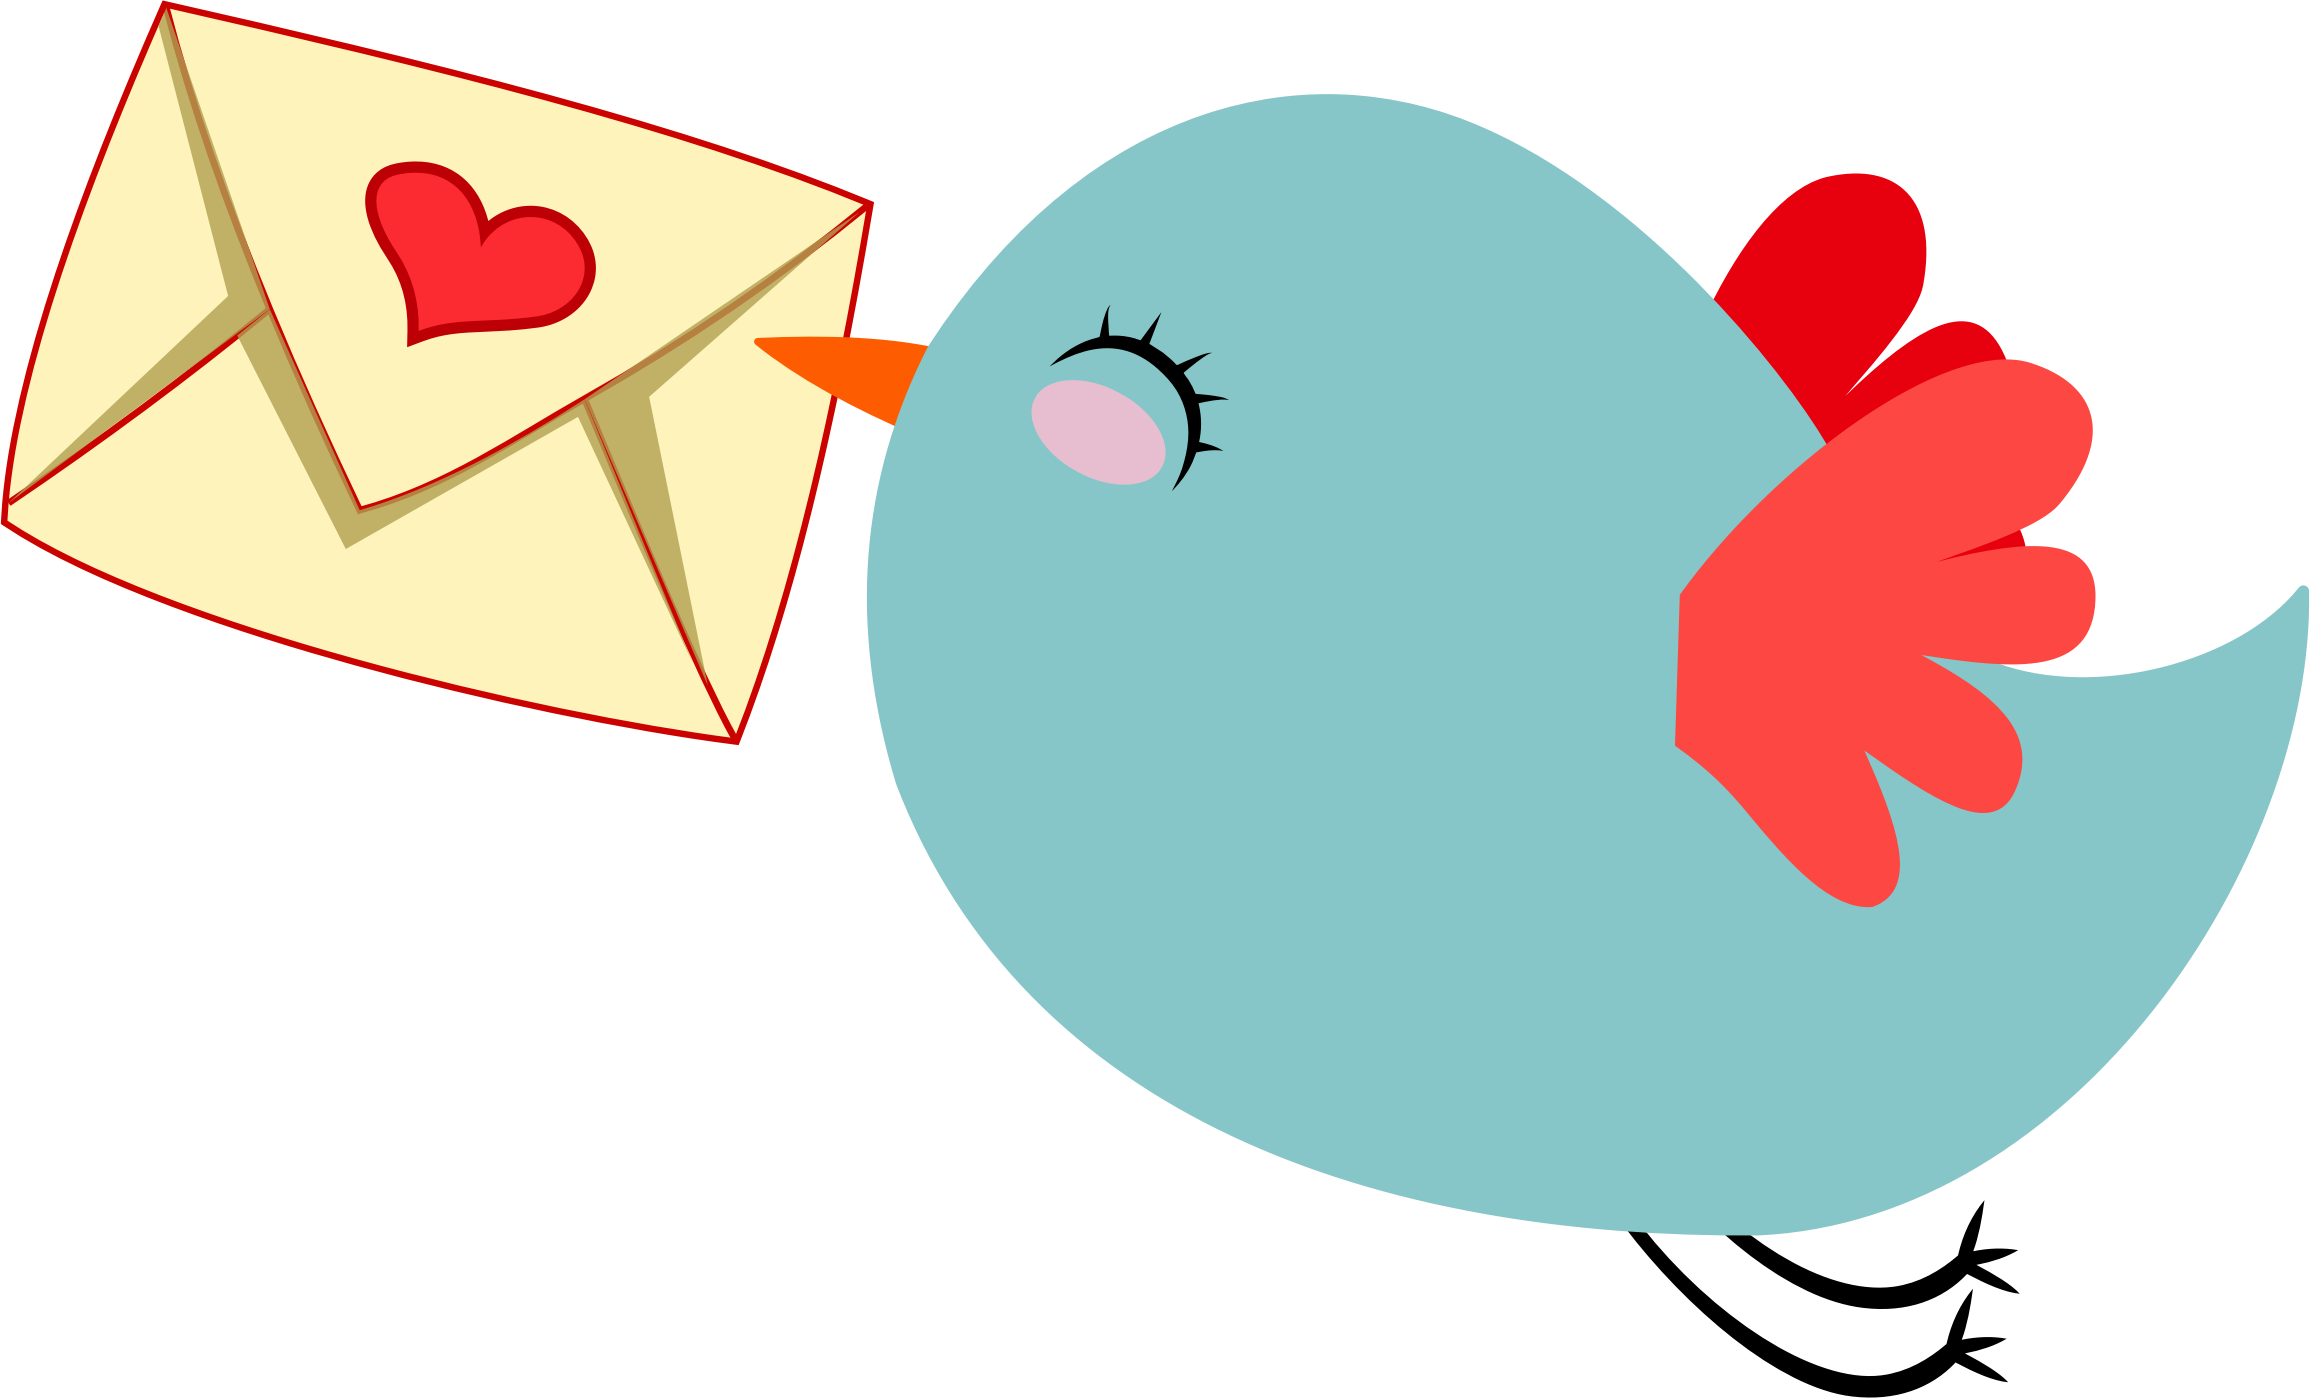 Positive clipart picnic game. Cute mail carrier bird